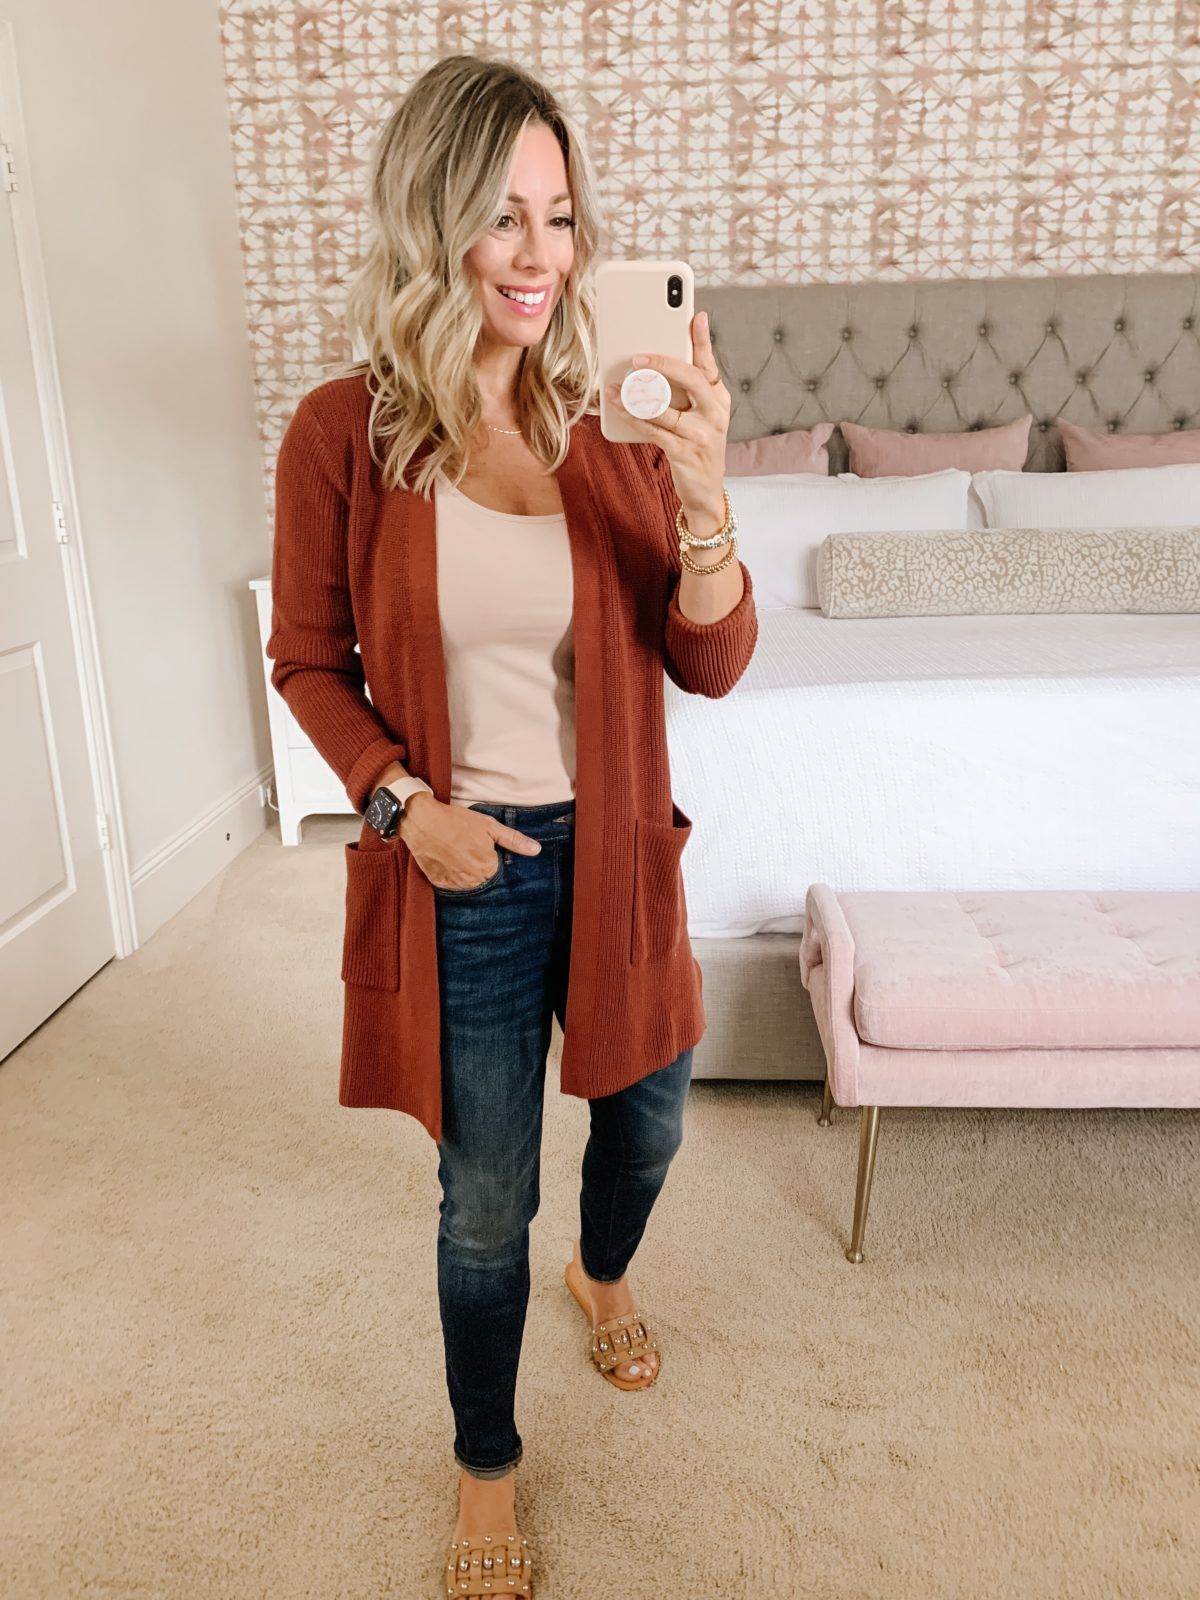 Old Navy Fashion, Tank, Cardigan, Jeans, Sandals